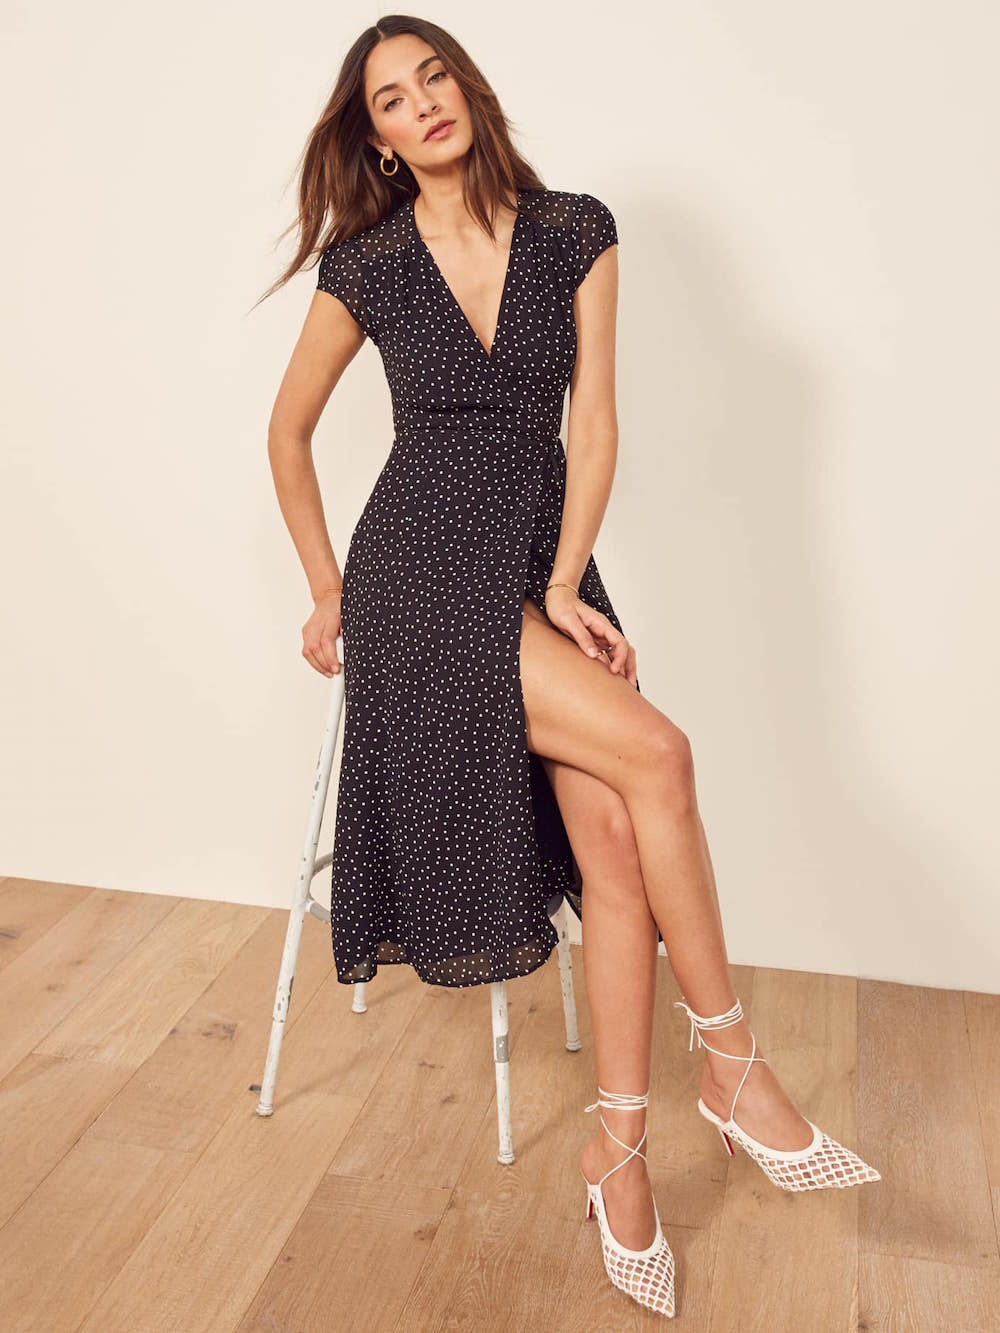 21 Reasons Wrap Dresses and Skirts Should Be Your Spring Uniform